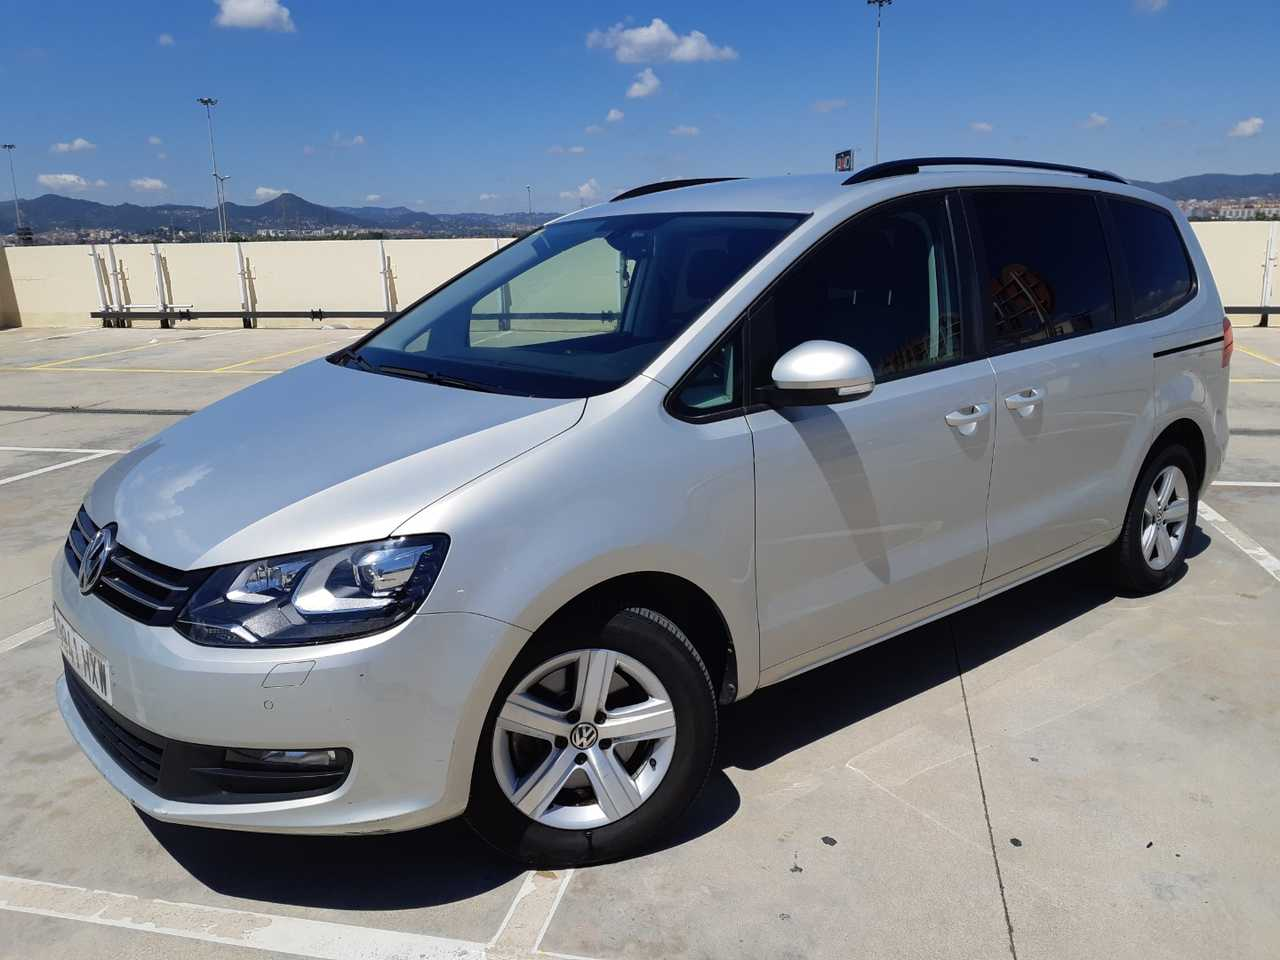 Volkswagen Sharan 2.0 140 cv TDI  7 PLAZAS ADVANCE BLUEMOTION 7 PLAZAS DE VERDAD..!!  - Foto 1